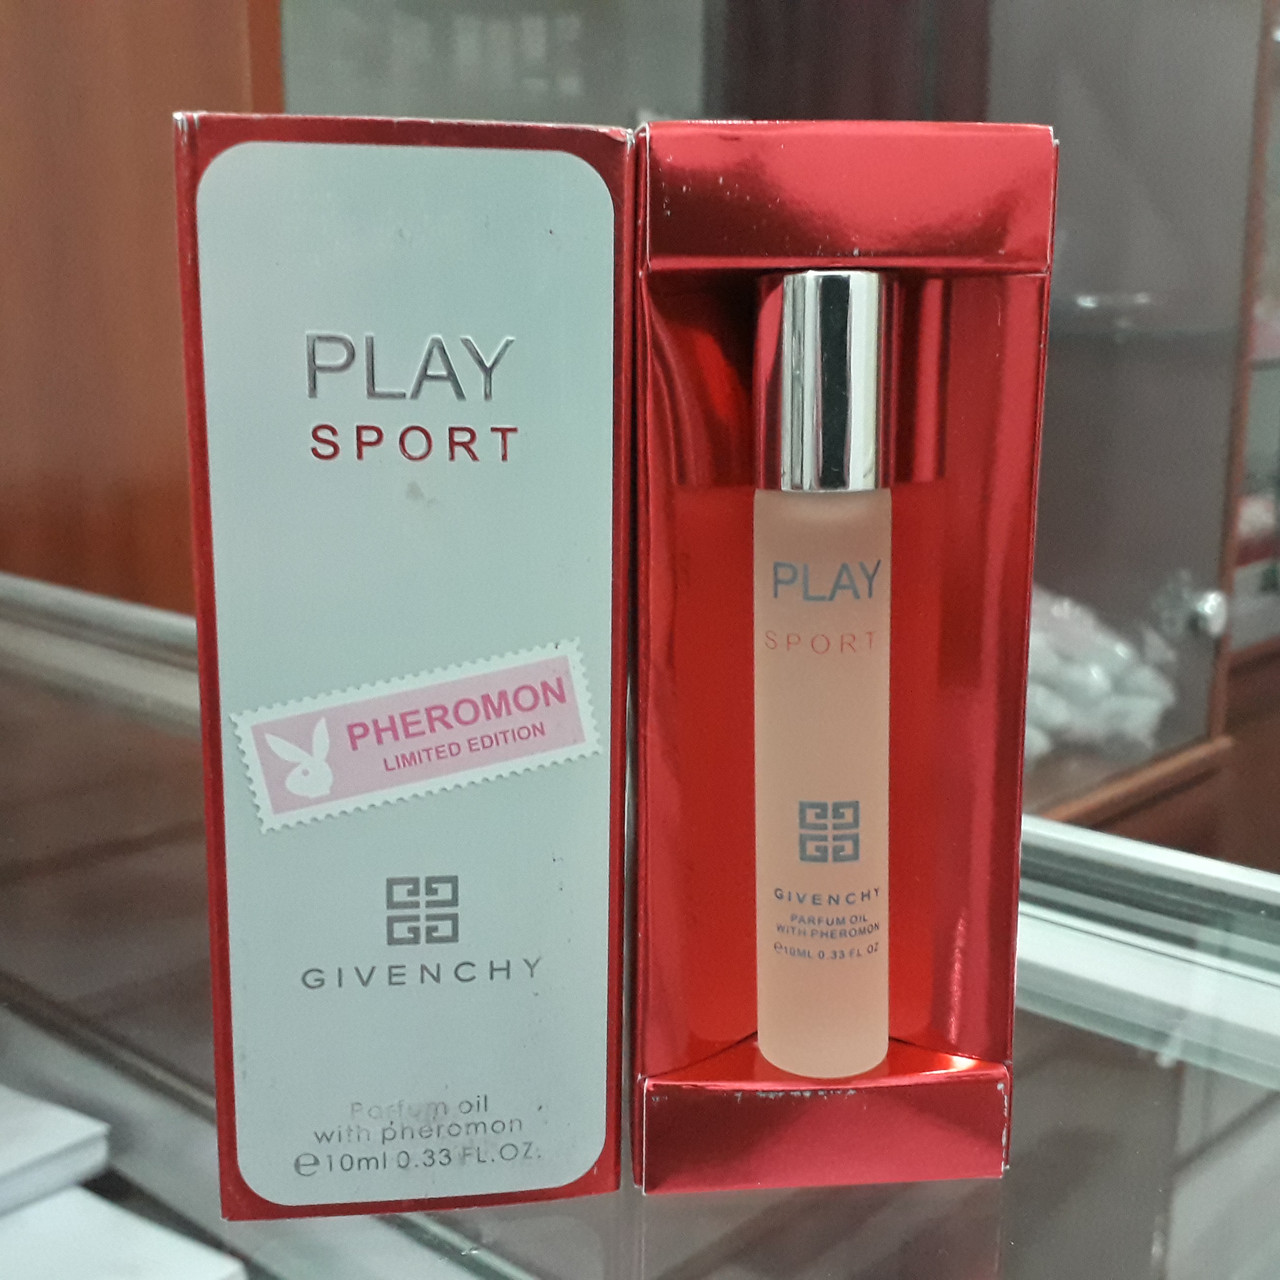 Духи с феромонами Givenchy Play Sport, 10 ml.